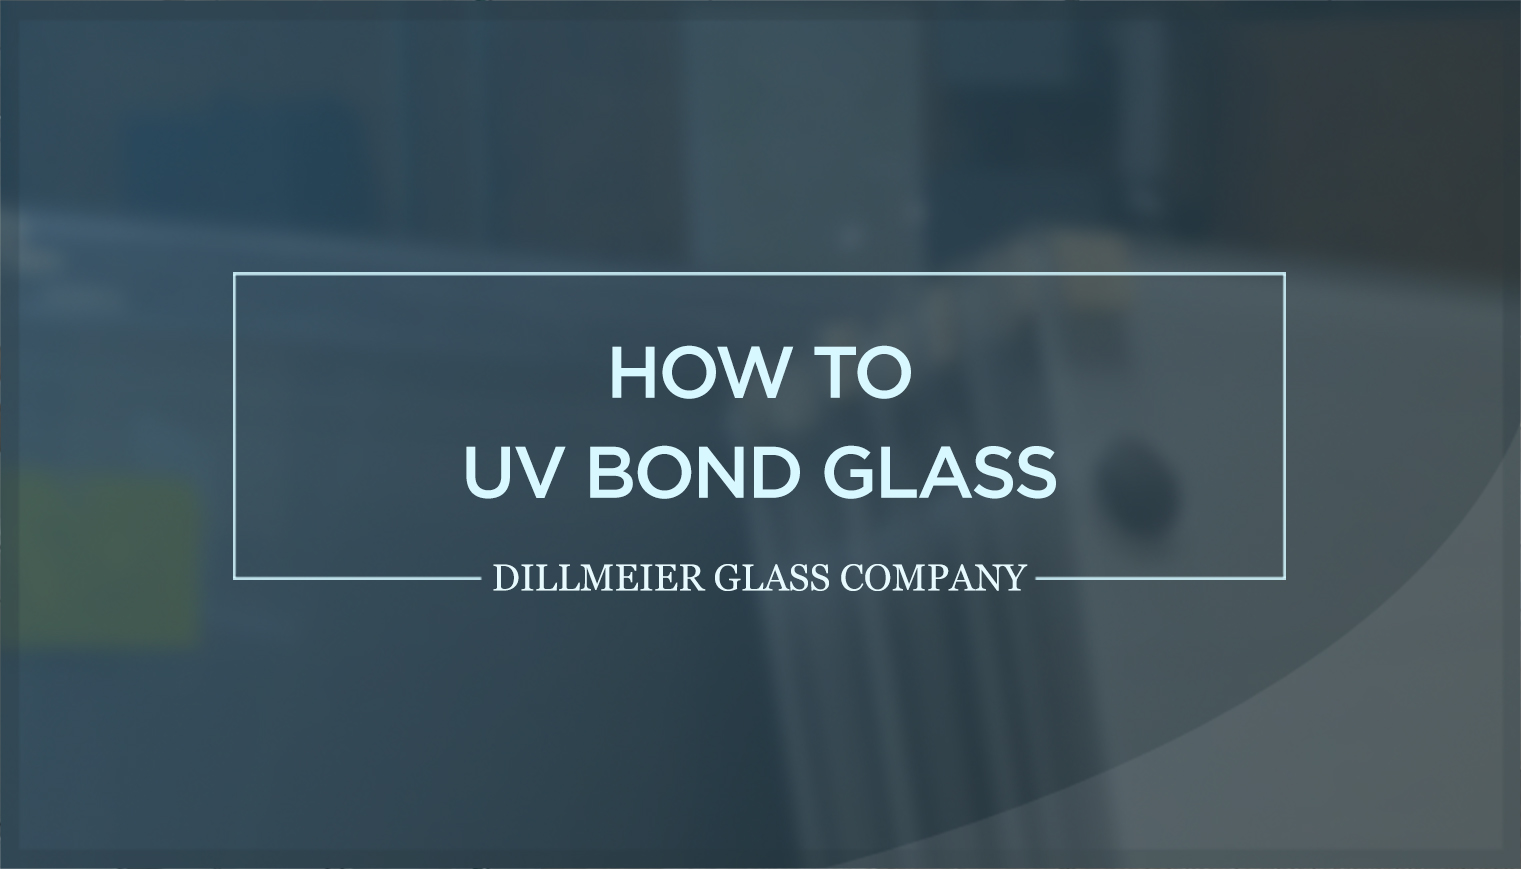 How to UV Bond Glass